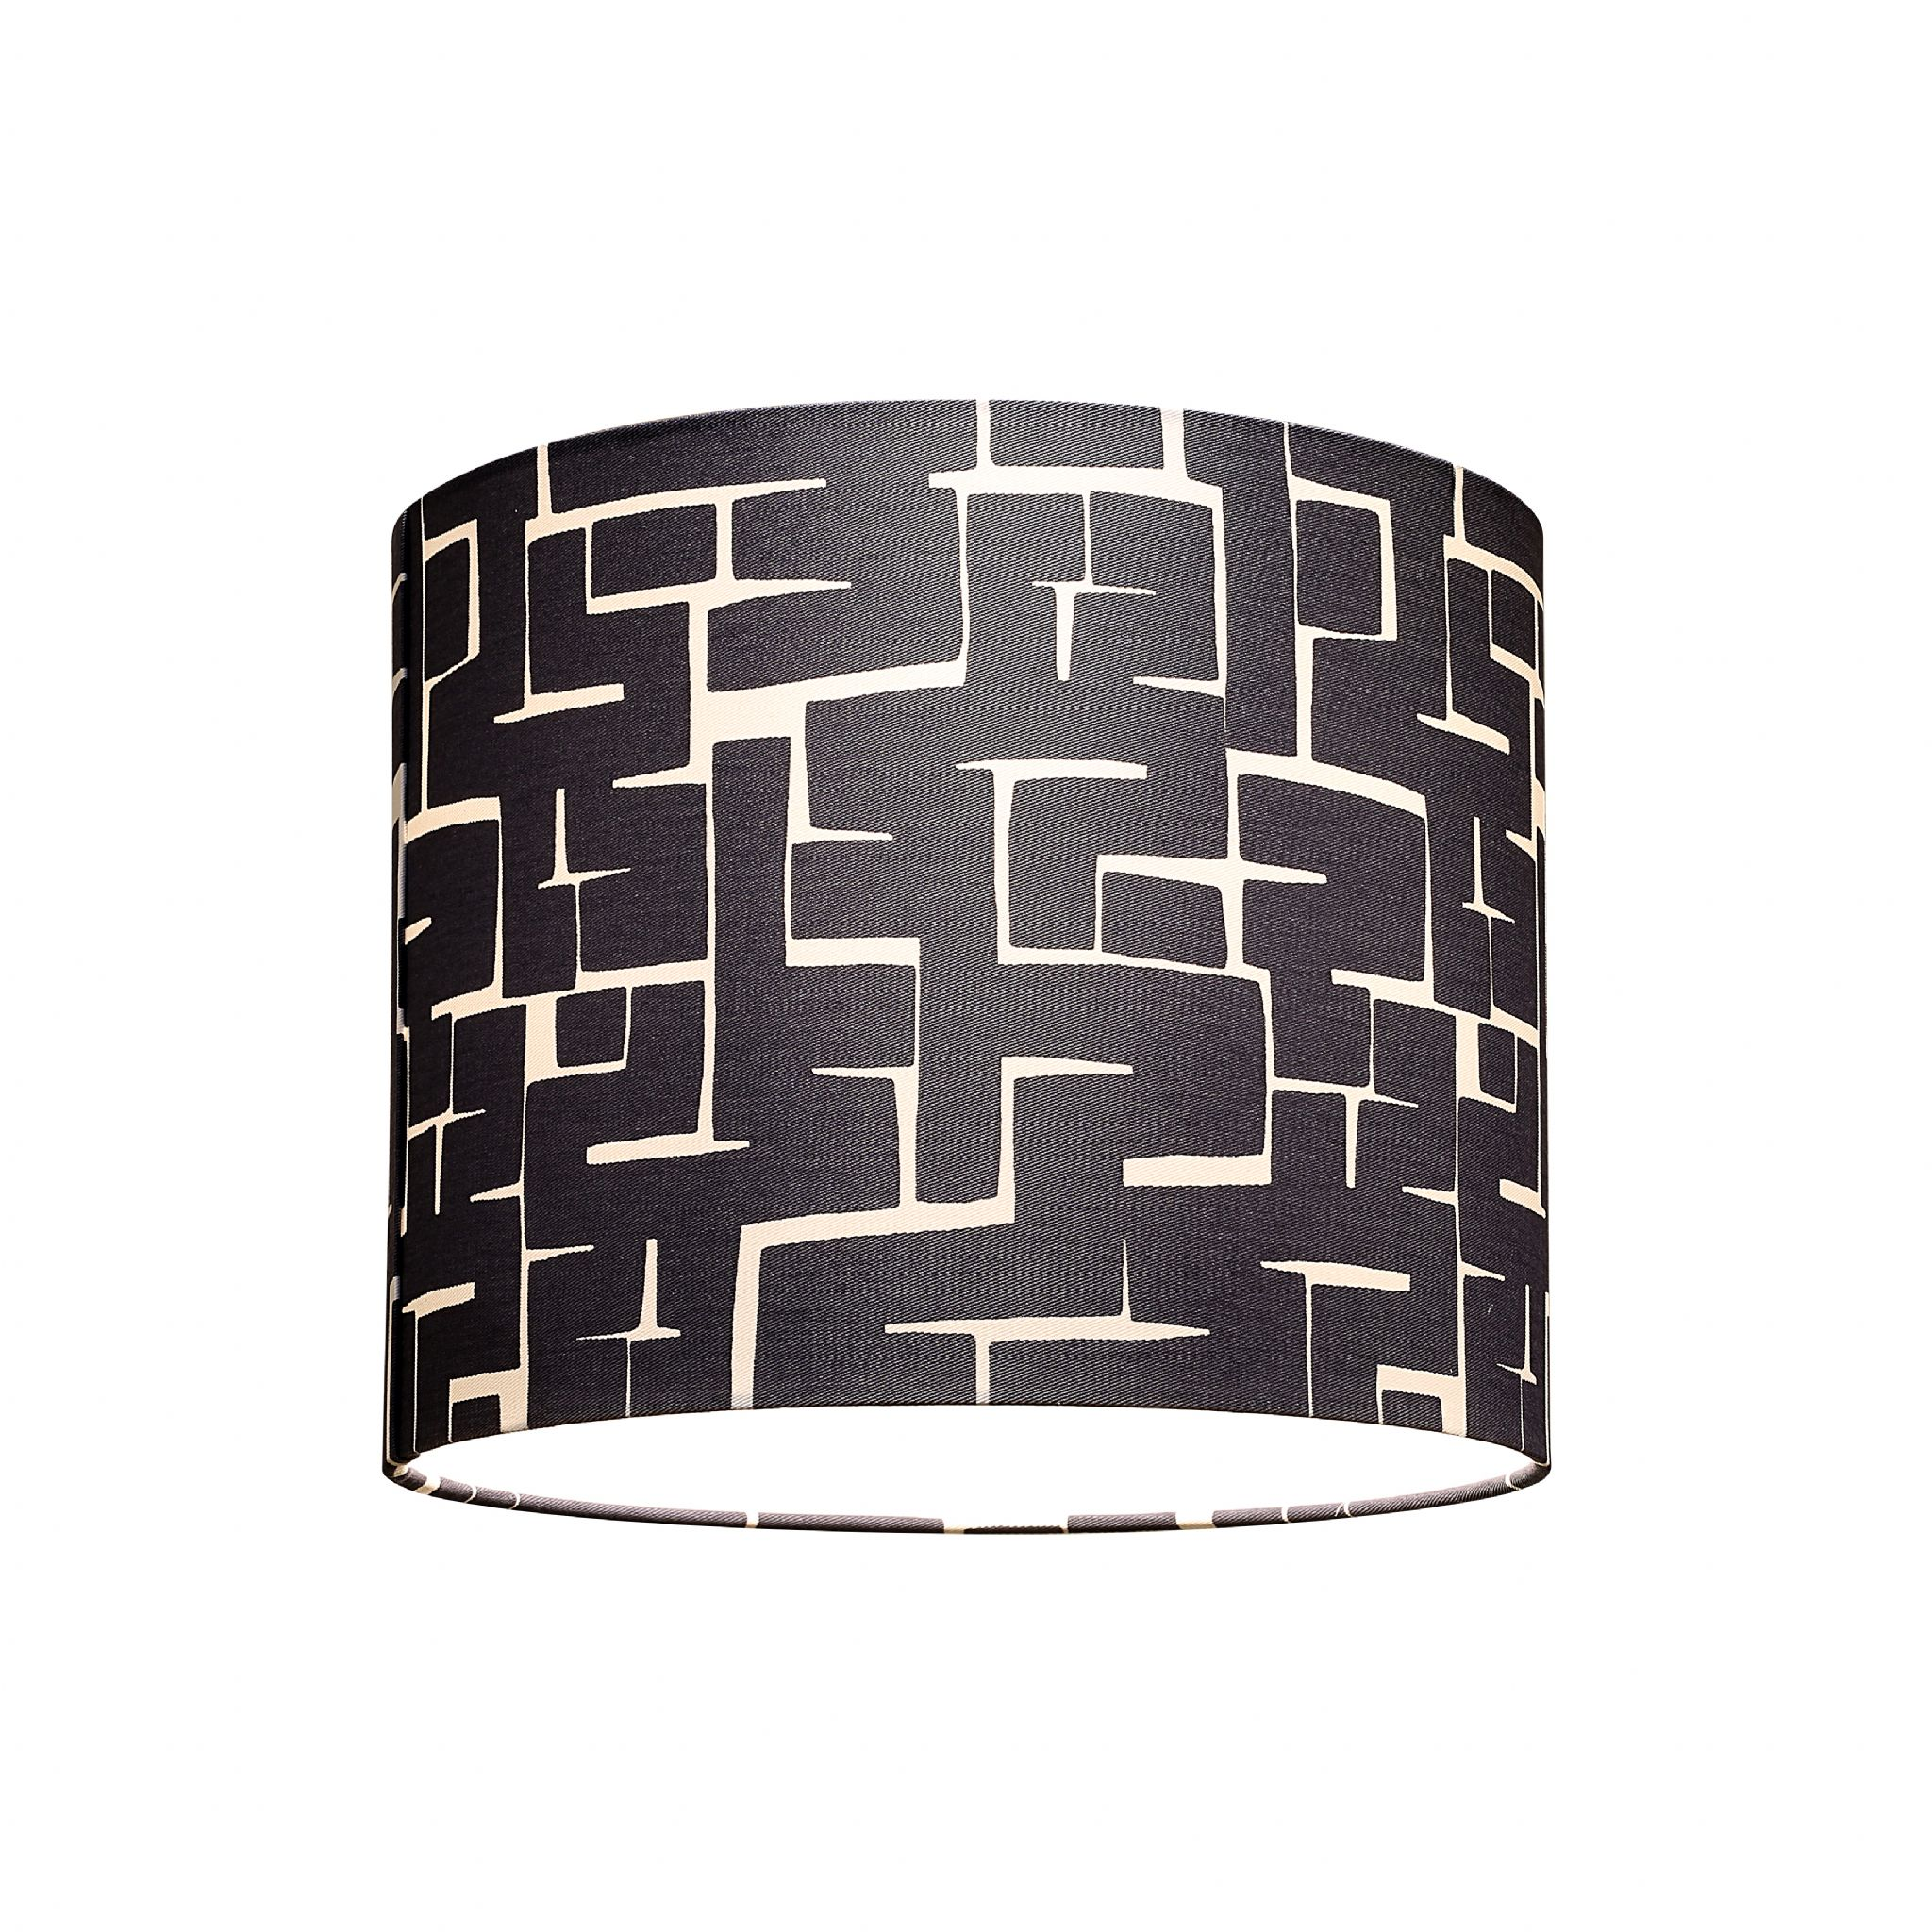 Romo Villa Nova Vence Chambray Navy Blue Geometric Lamp Shade